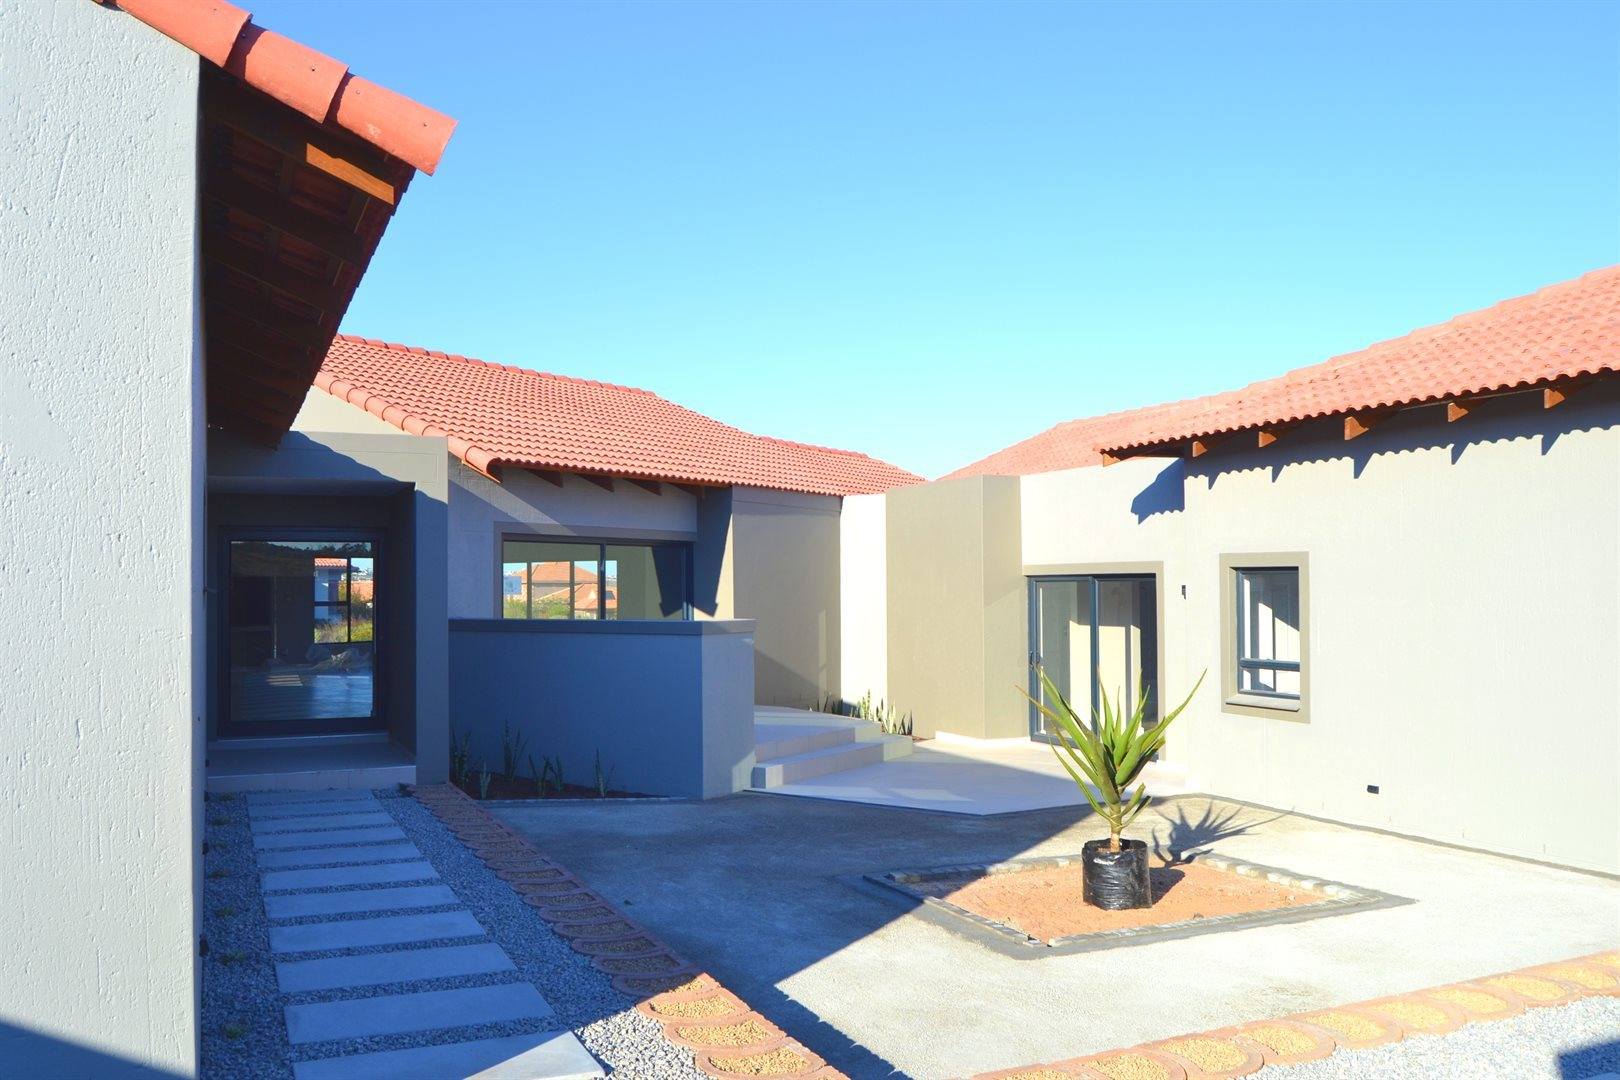 Property and Houses for sale in Langebaan Country Estate, House, 3 Bedrooms - ZAR 999,999,999